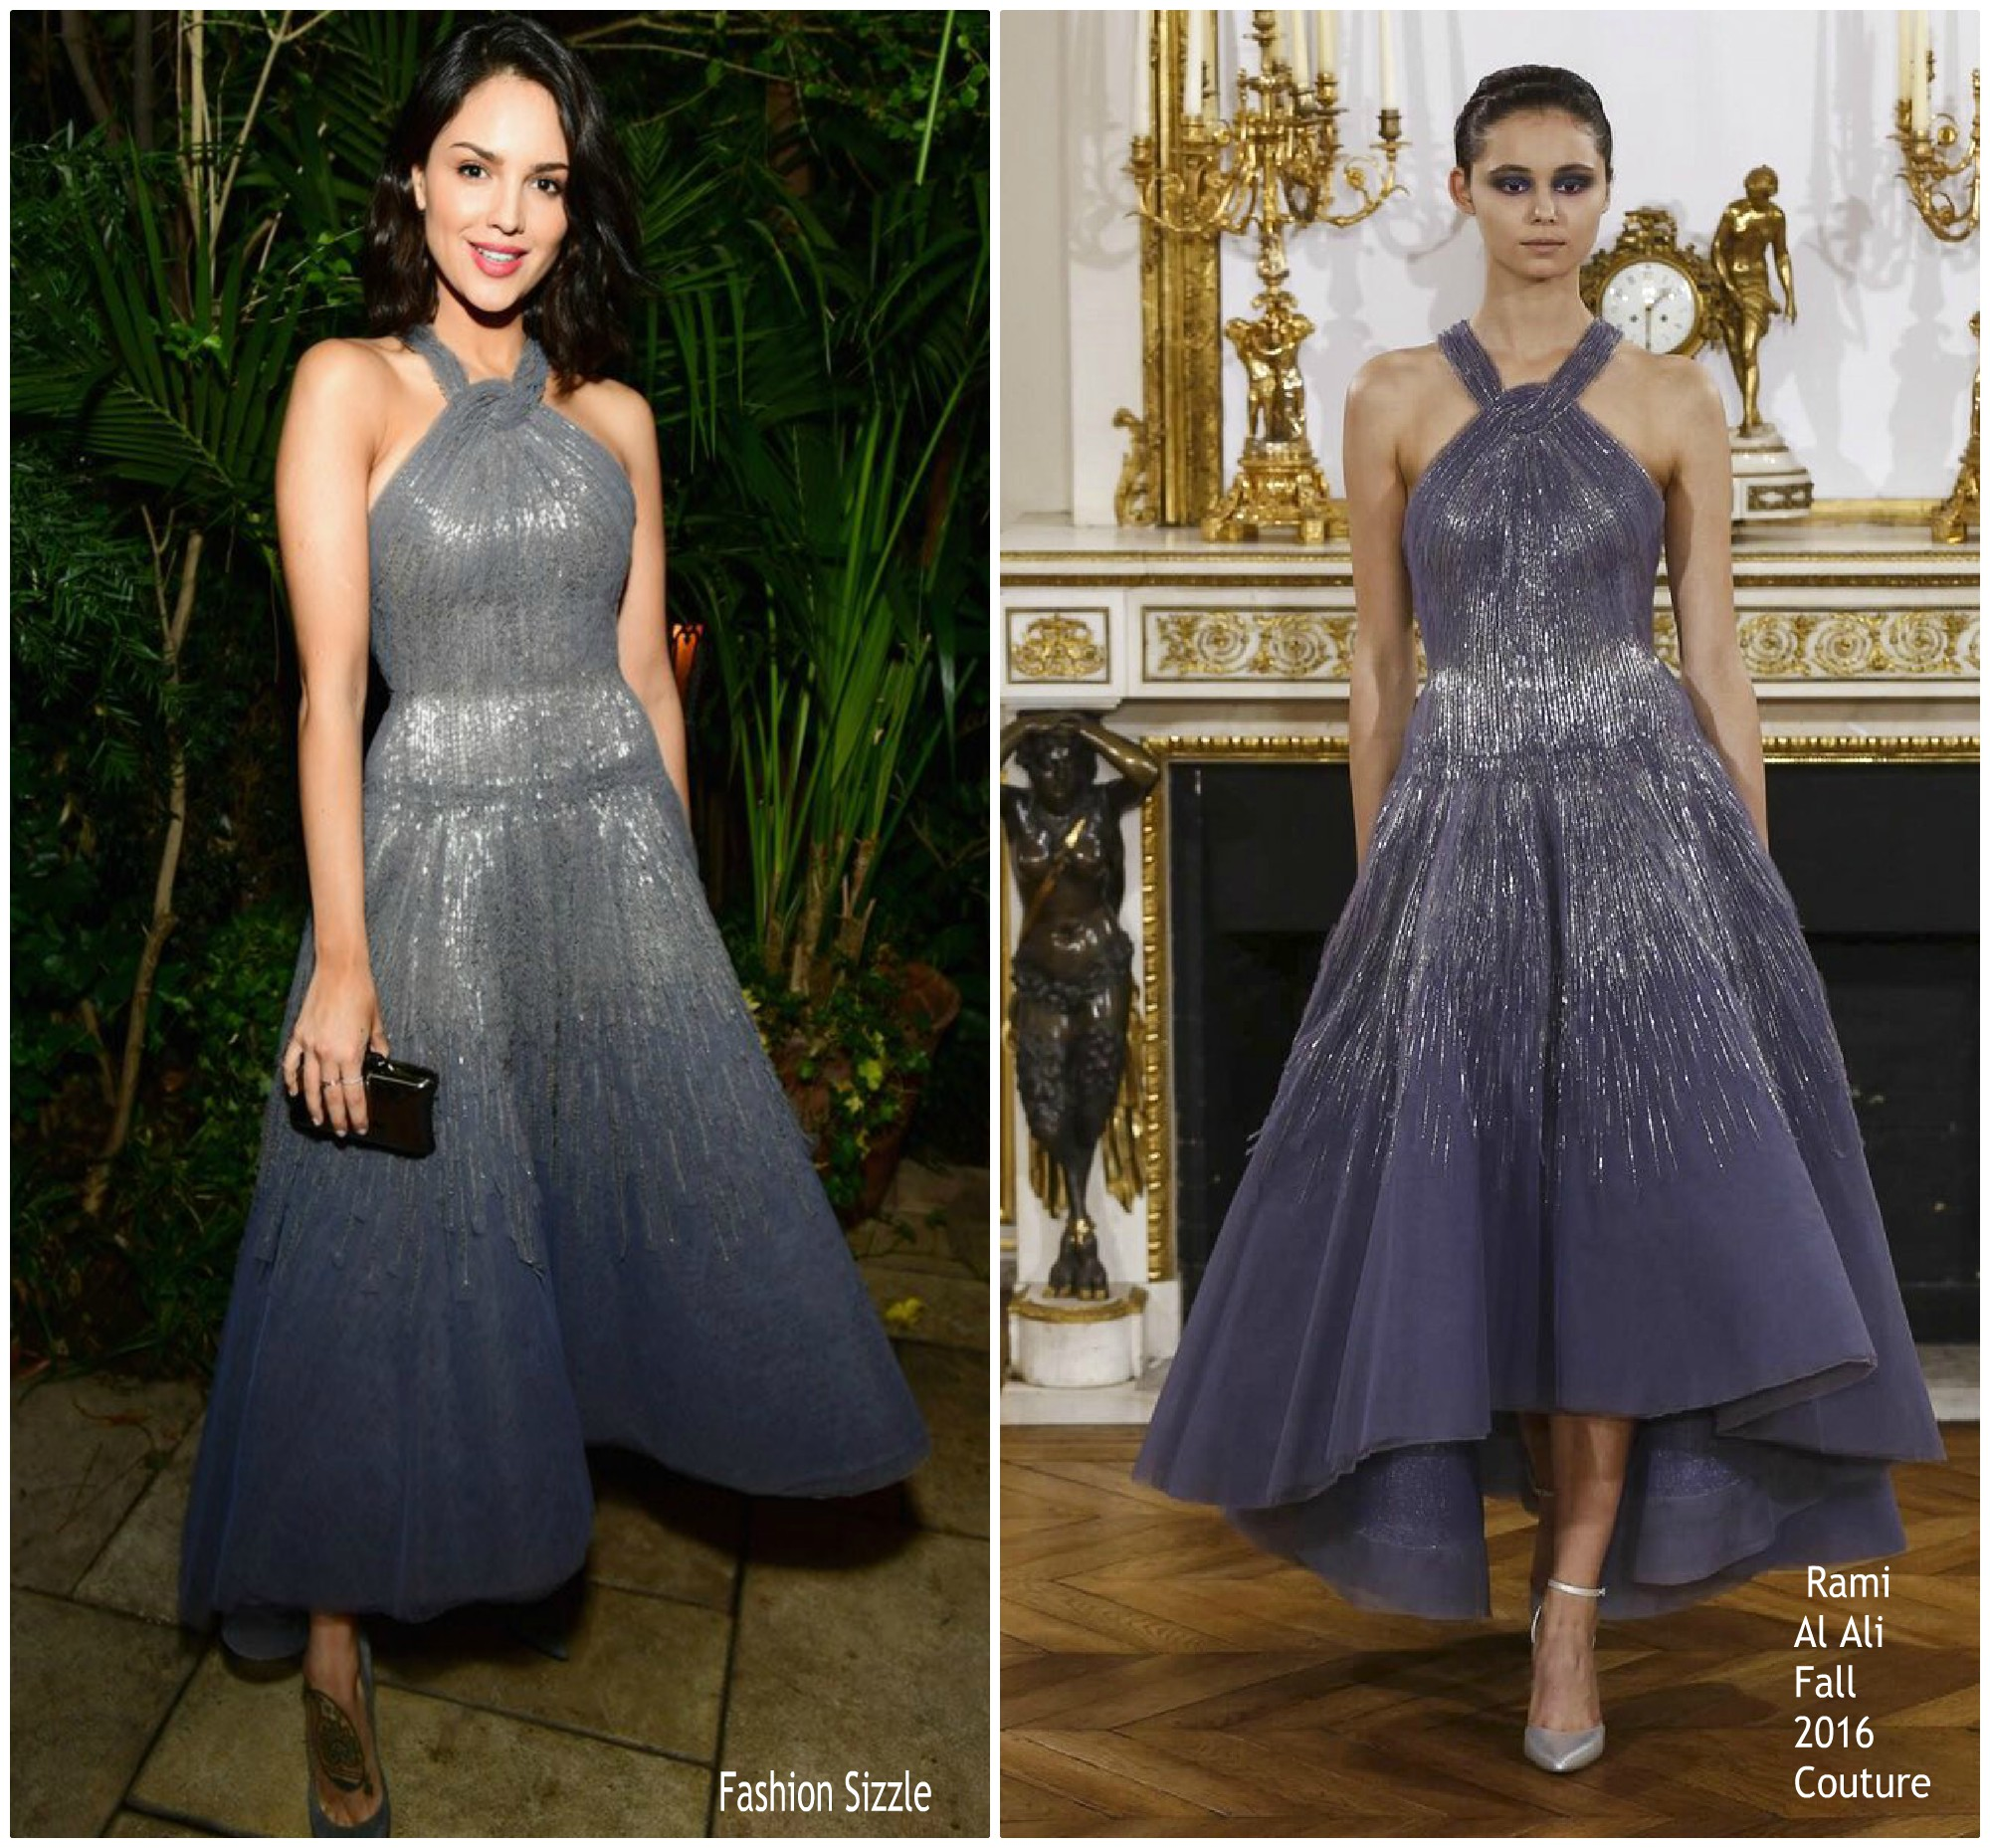 eiza-gonzalez-in-rami-al-ali-couture-vanity-fairs-celebrating-of-phantom-thread